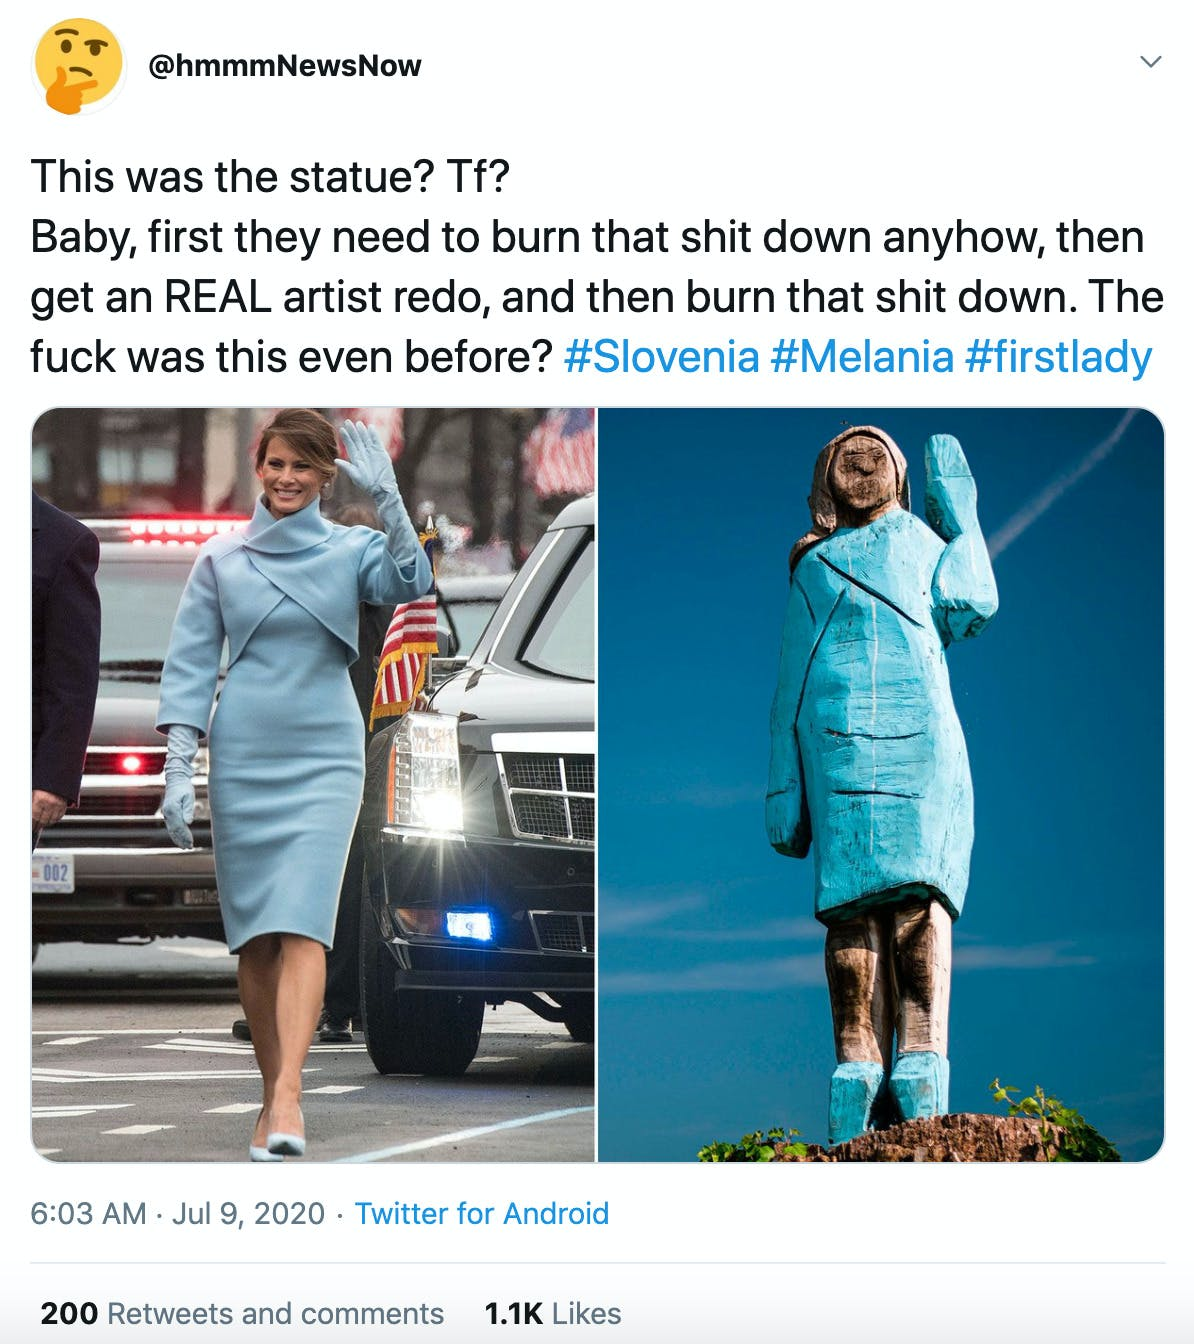 """""""This was the statue? Tf? Baby, first they need to burn that shit down anyhow, then get an REAL artist redo, and then burn that shit down. The fuck was this even before? #Slovenia #Melania #firstlady"""" image of Melania next to the statue"""